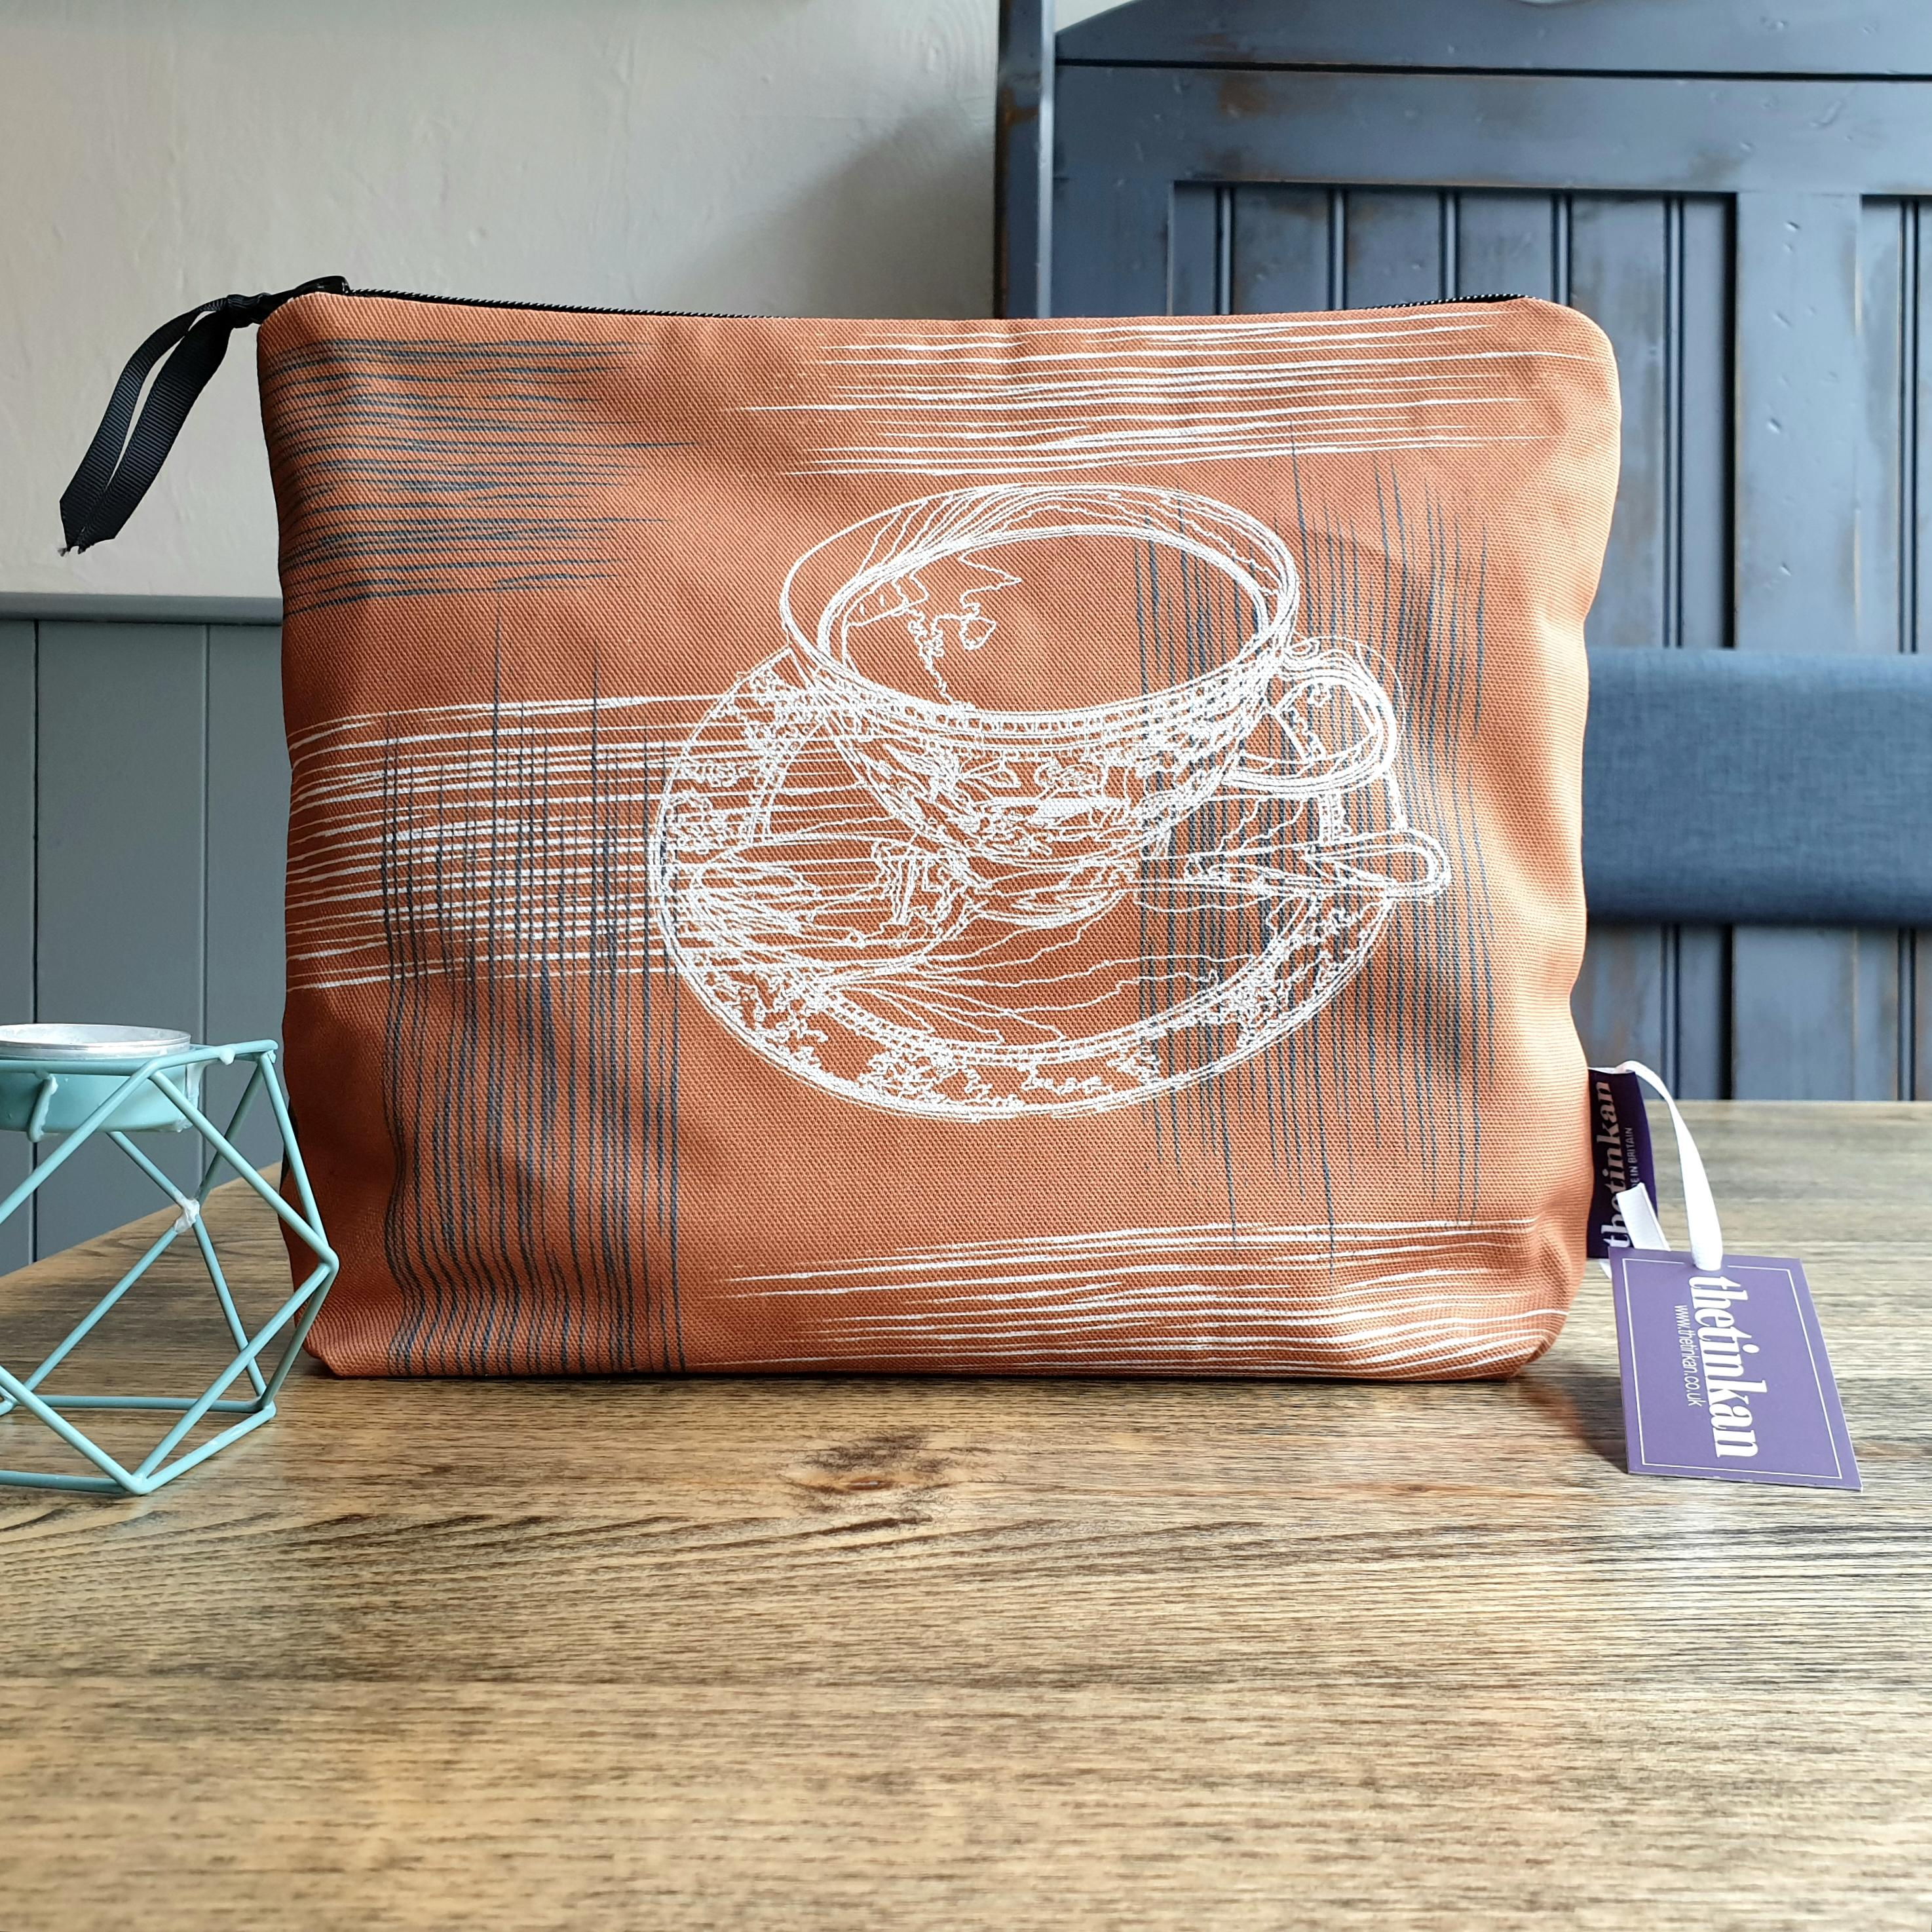 Warm rust orange with grey coloured reverse, travel beauty washbag featuring the white traced outline of a classic British teacup & saucer. Made from panama cotton with black waterproof lining and matching black sturdy zip. Generously sized for all your travel or home needs. Designed by thetinkan. VIEW PRODUCT >>